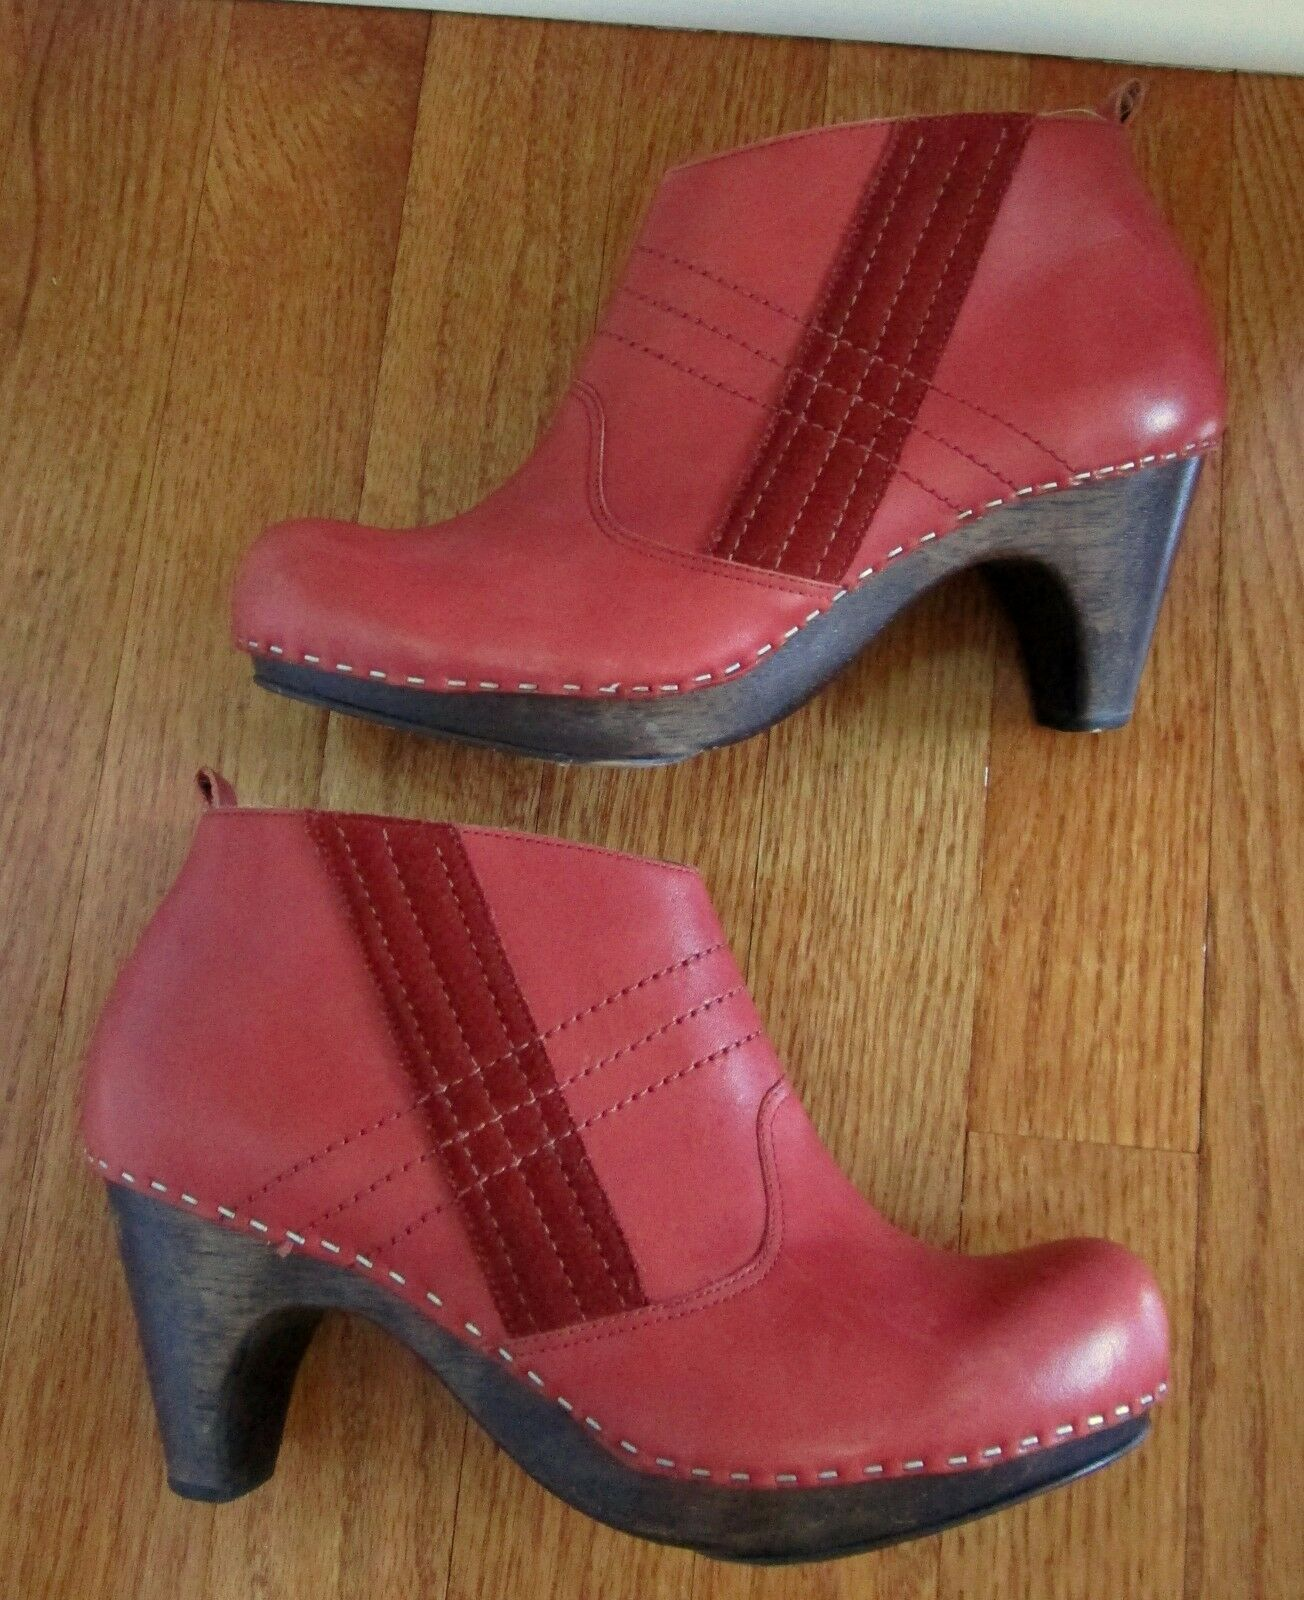 ANTHROPOLOGIE CIDER PRESS CLOGS SCHULER & SONS Schuhe ROT BOOTIES ANKLE BOOTS 7